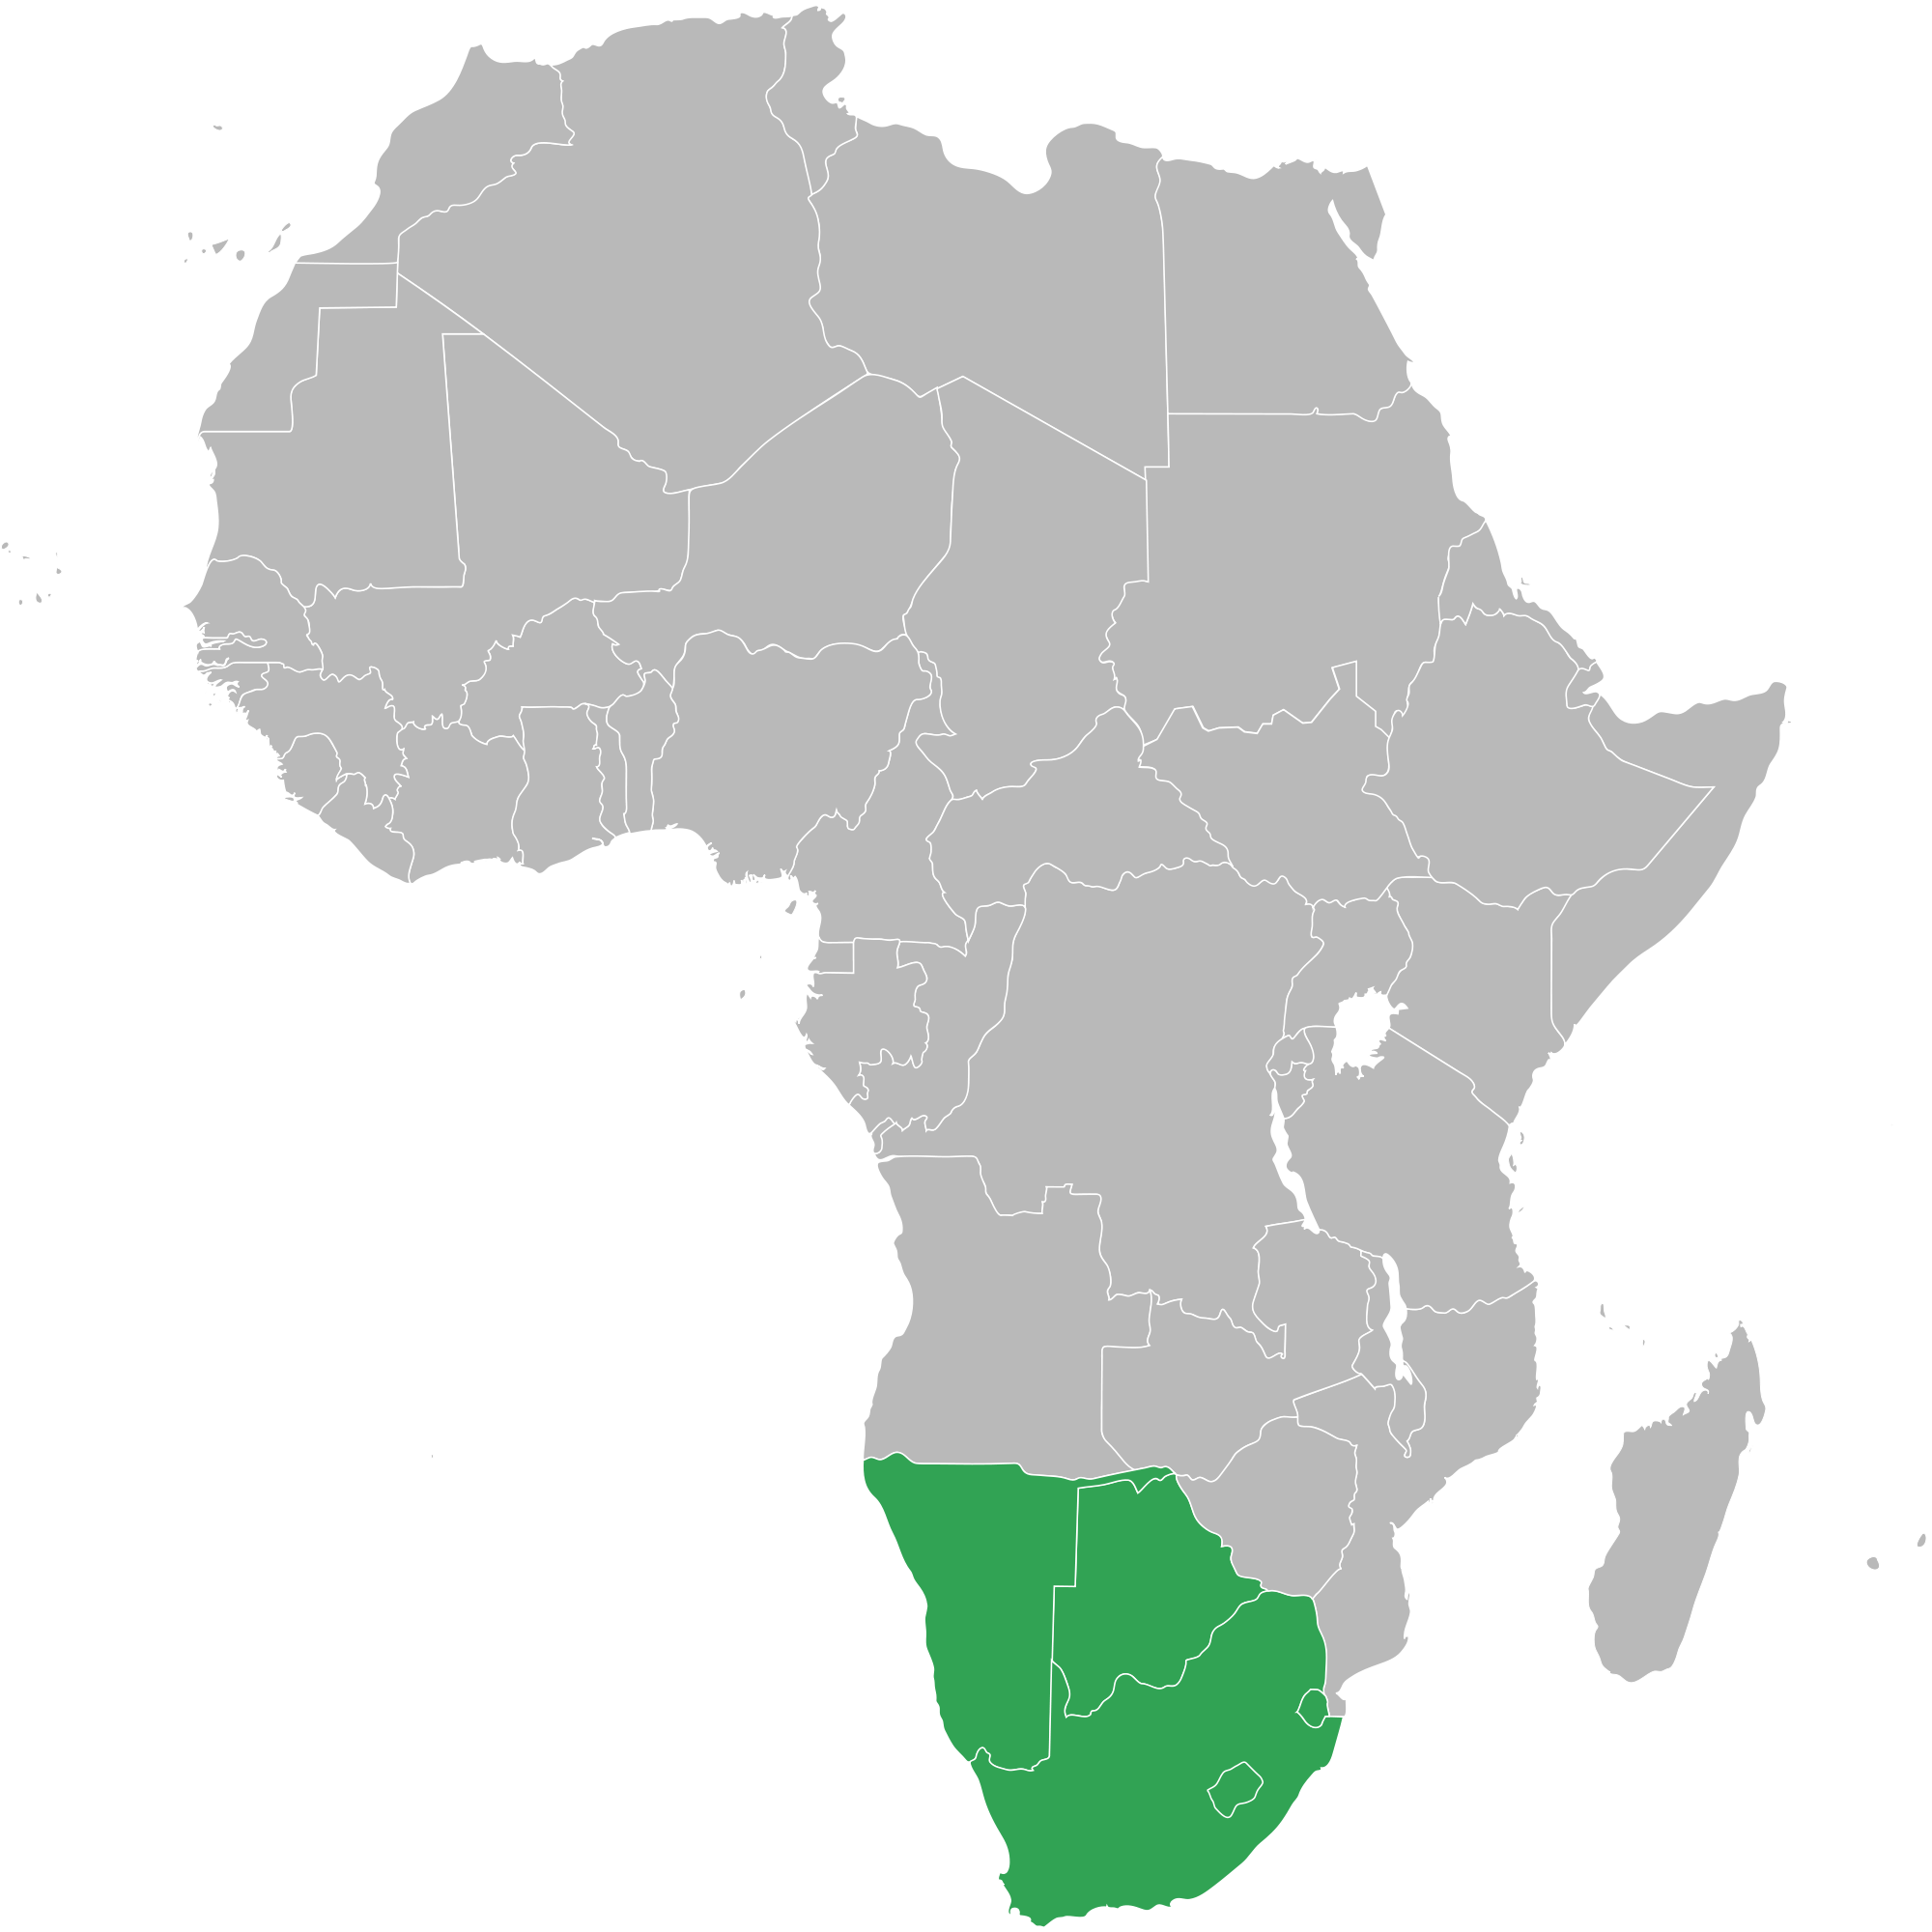 Southern_Africa.png